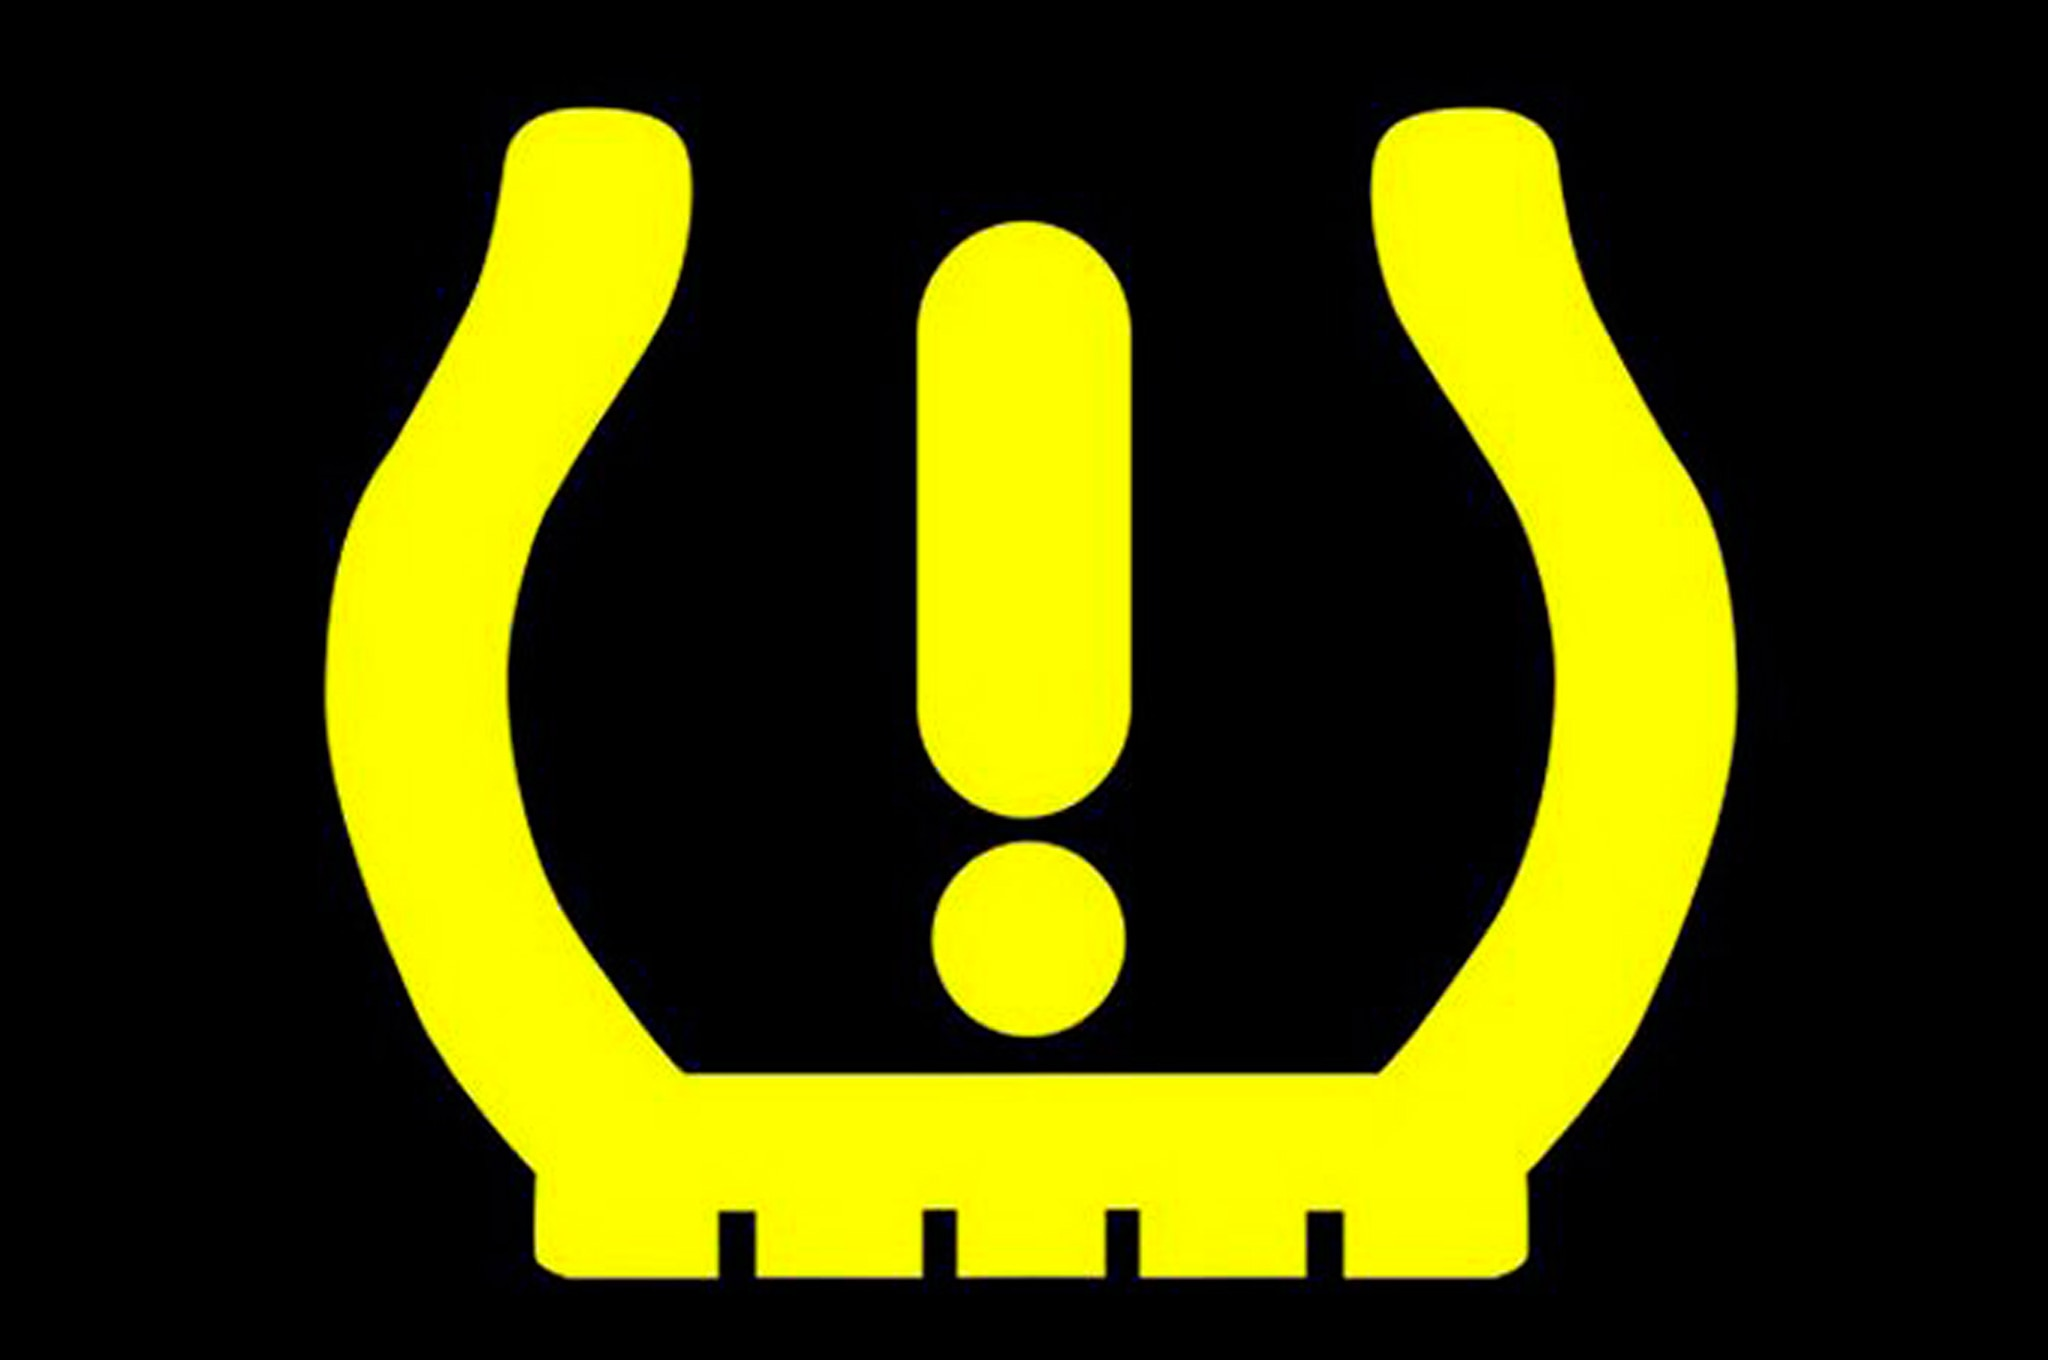 Tire Pressure Warning Icon